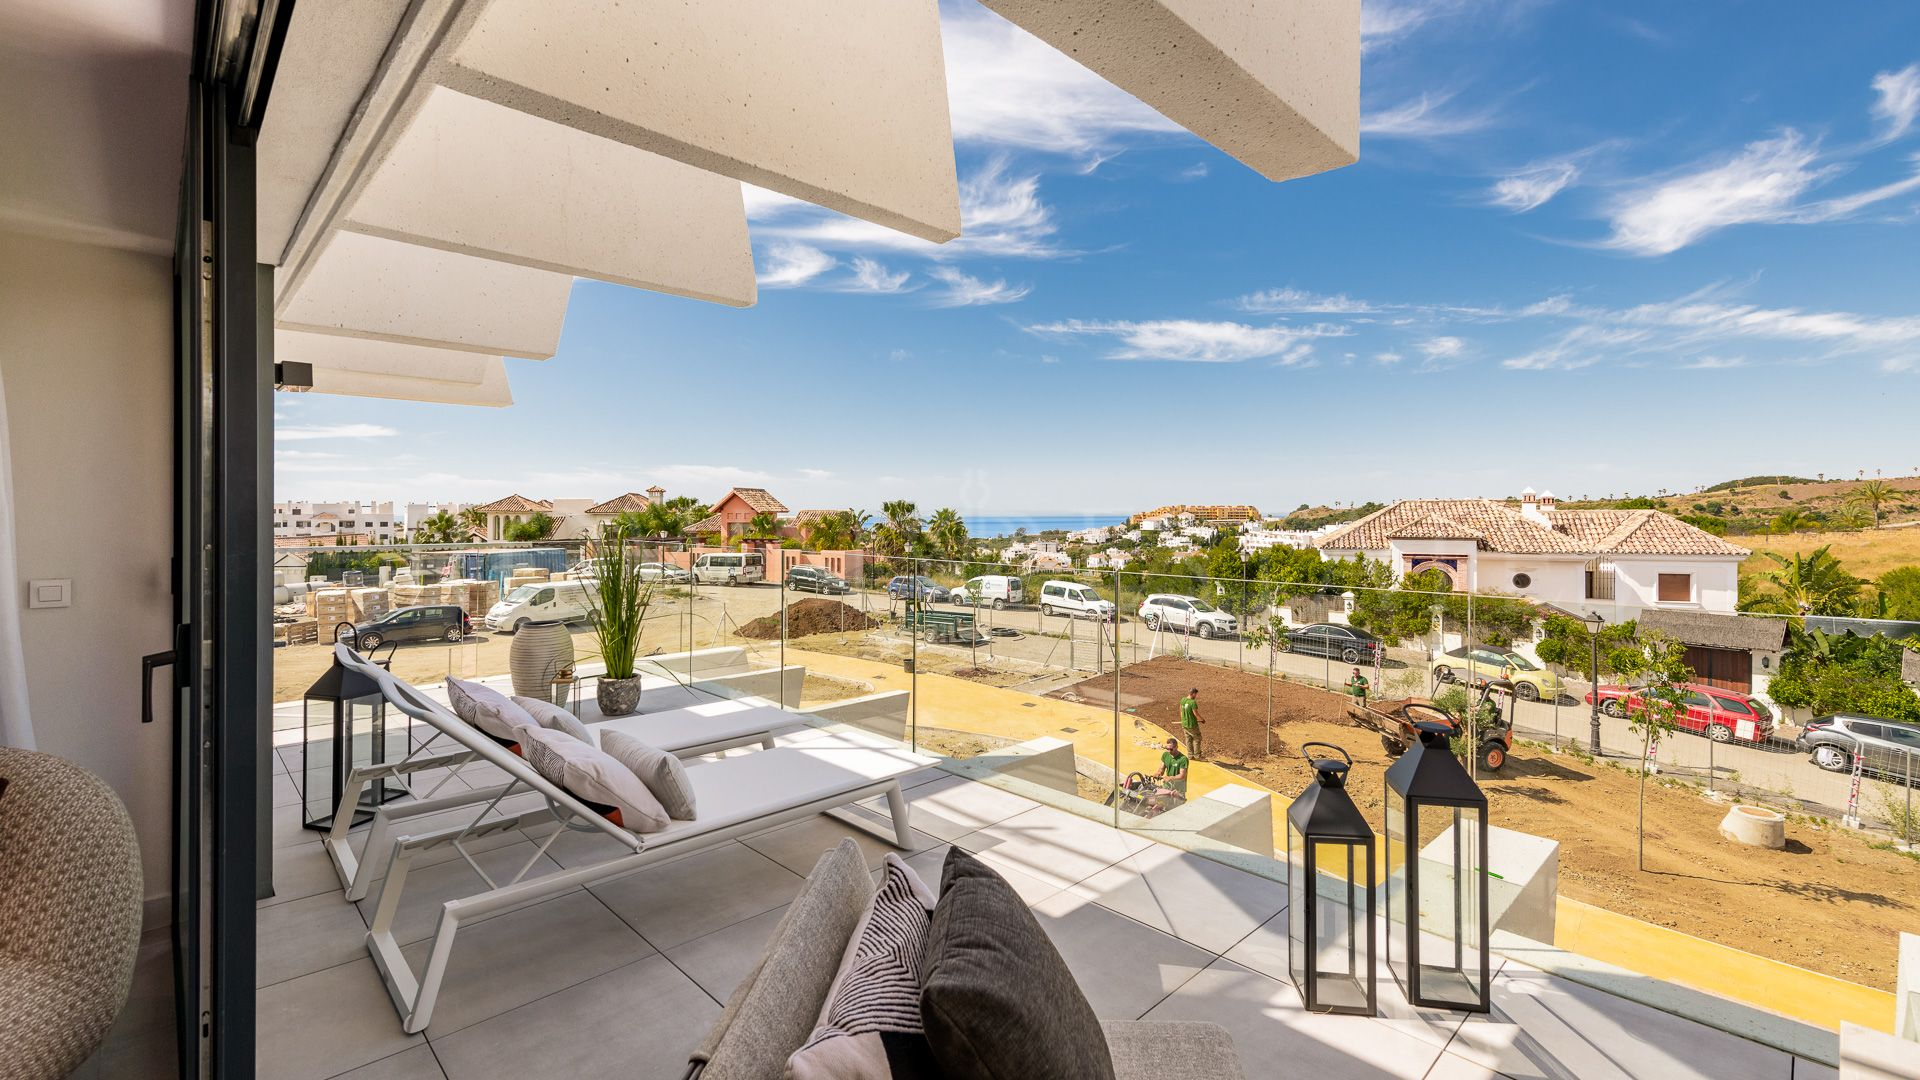 127 exclusive homes specially designed for enjoying the Mediterraneanlifestyle. It's exceptionally located halfway between Estepona and Marbella.